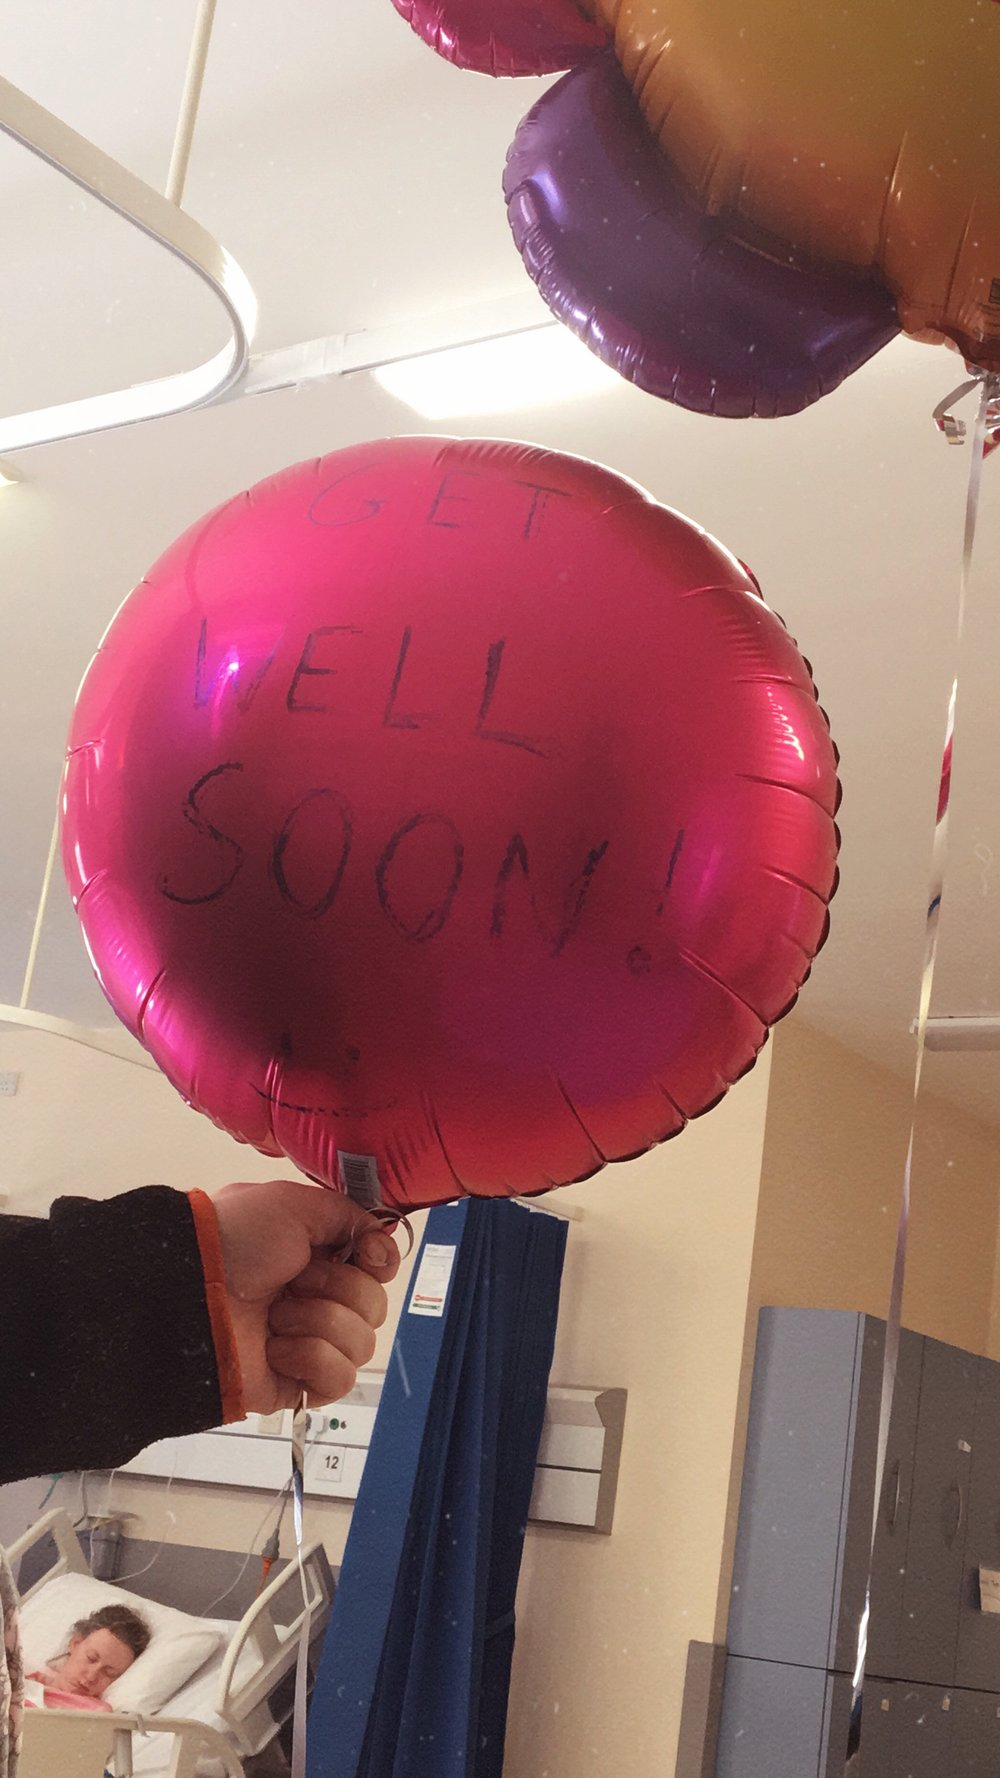 A hospital with no Get Well Soon balloons called for some improvisation!